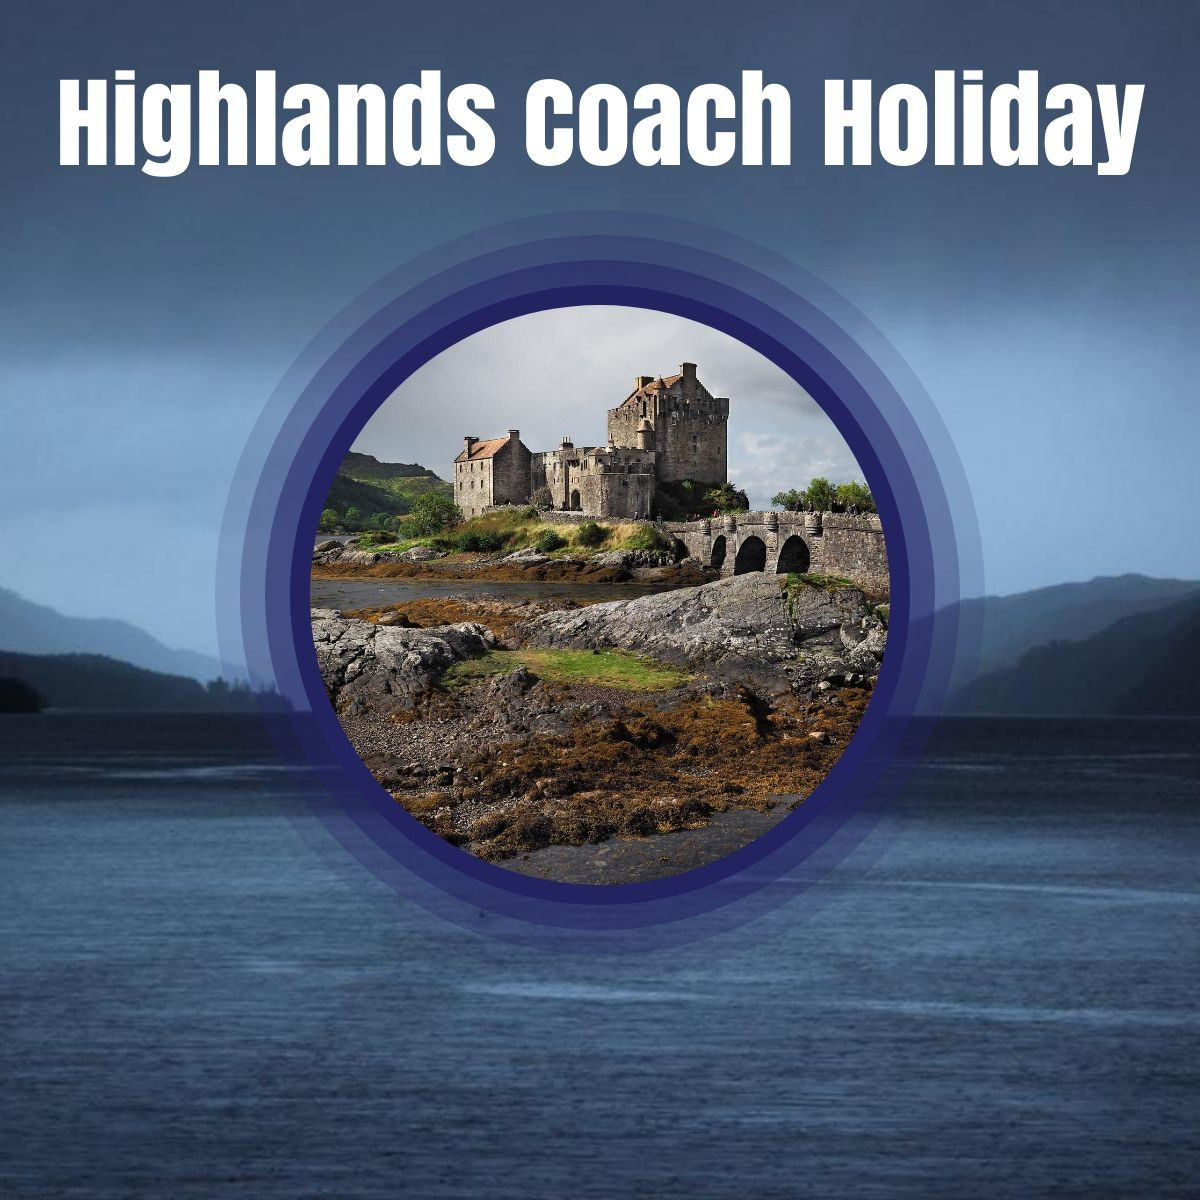 highlands coach holiday the professional traveller